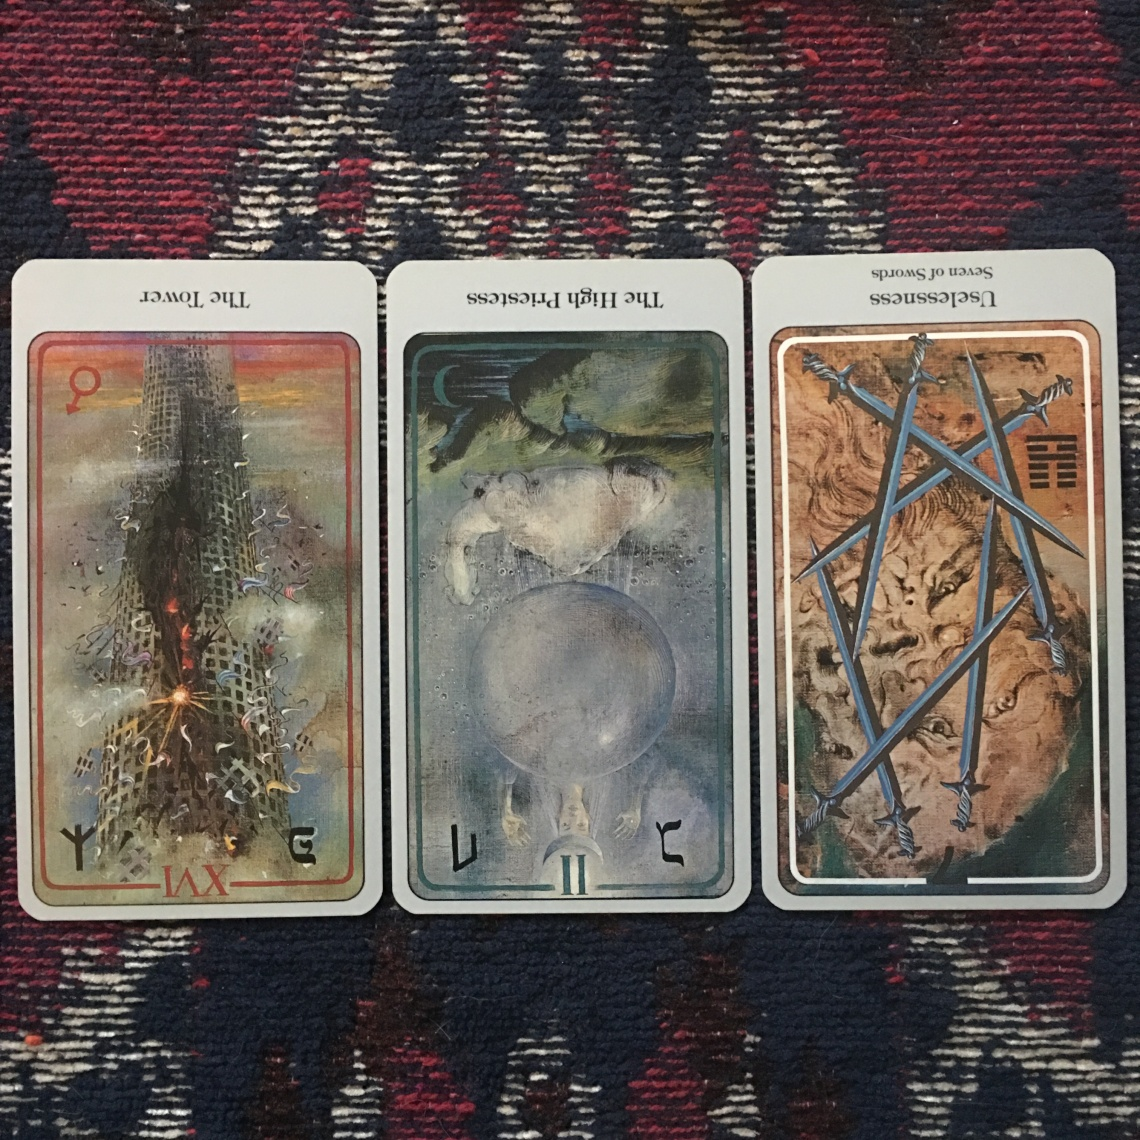 The Tower (reversed), The High Priestess (reversed), and Seven of Swords (reversed)